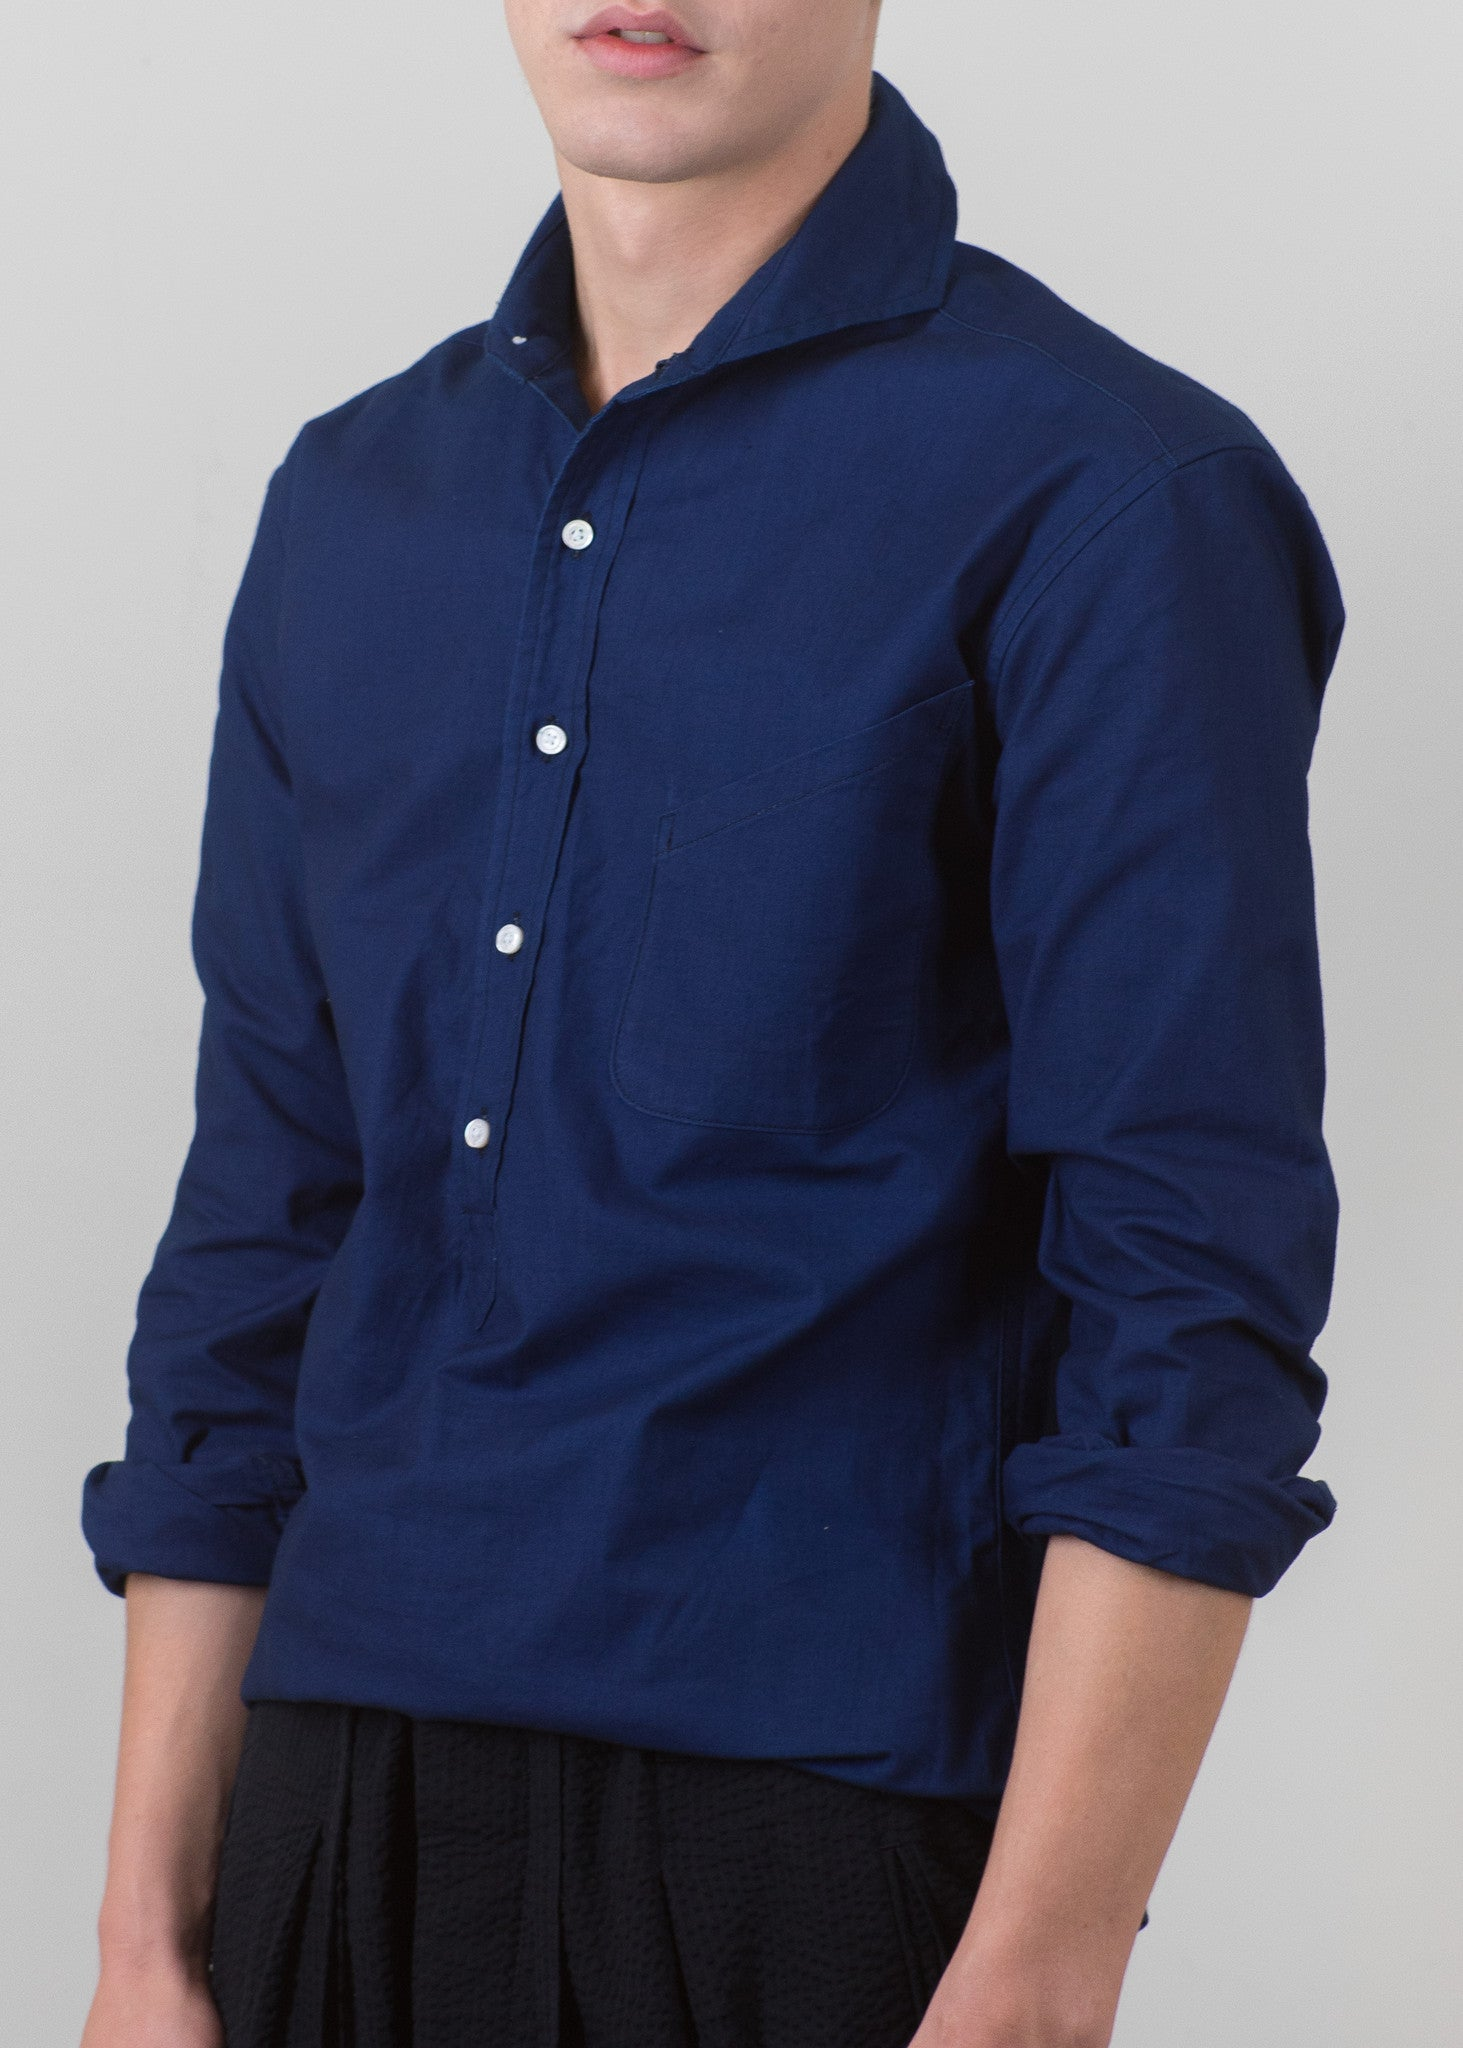 Cutaway Collar Popover Shirt - Indigo - New Union Clothing